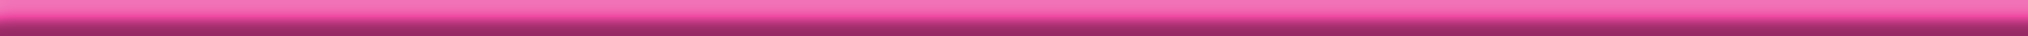 background6pink